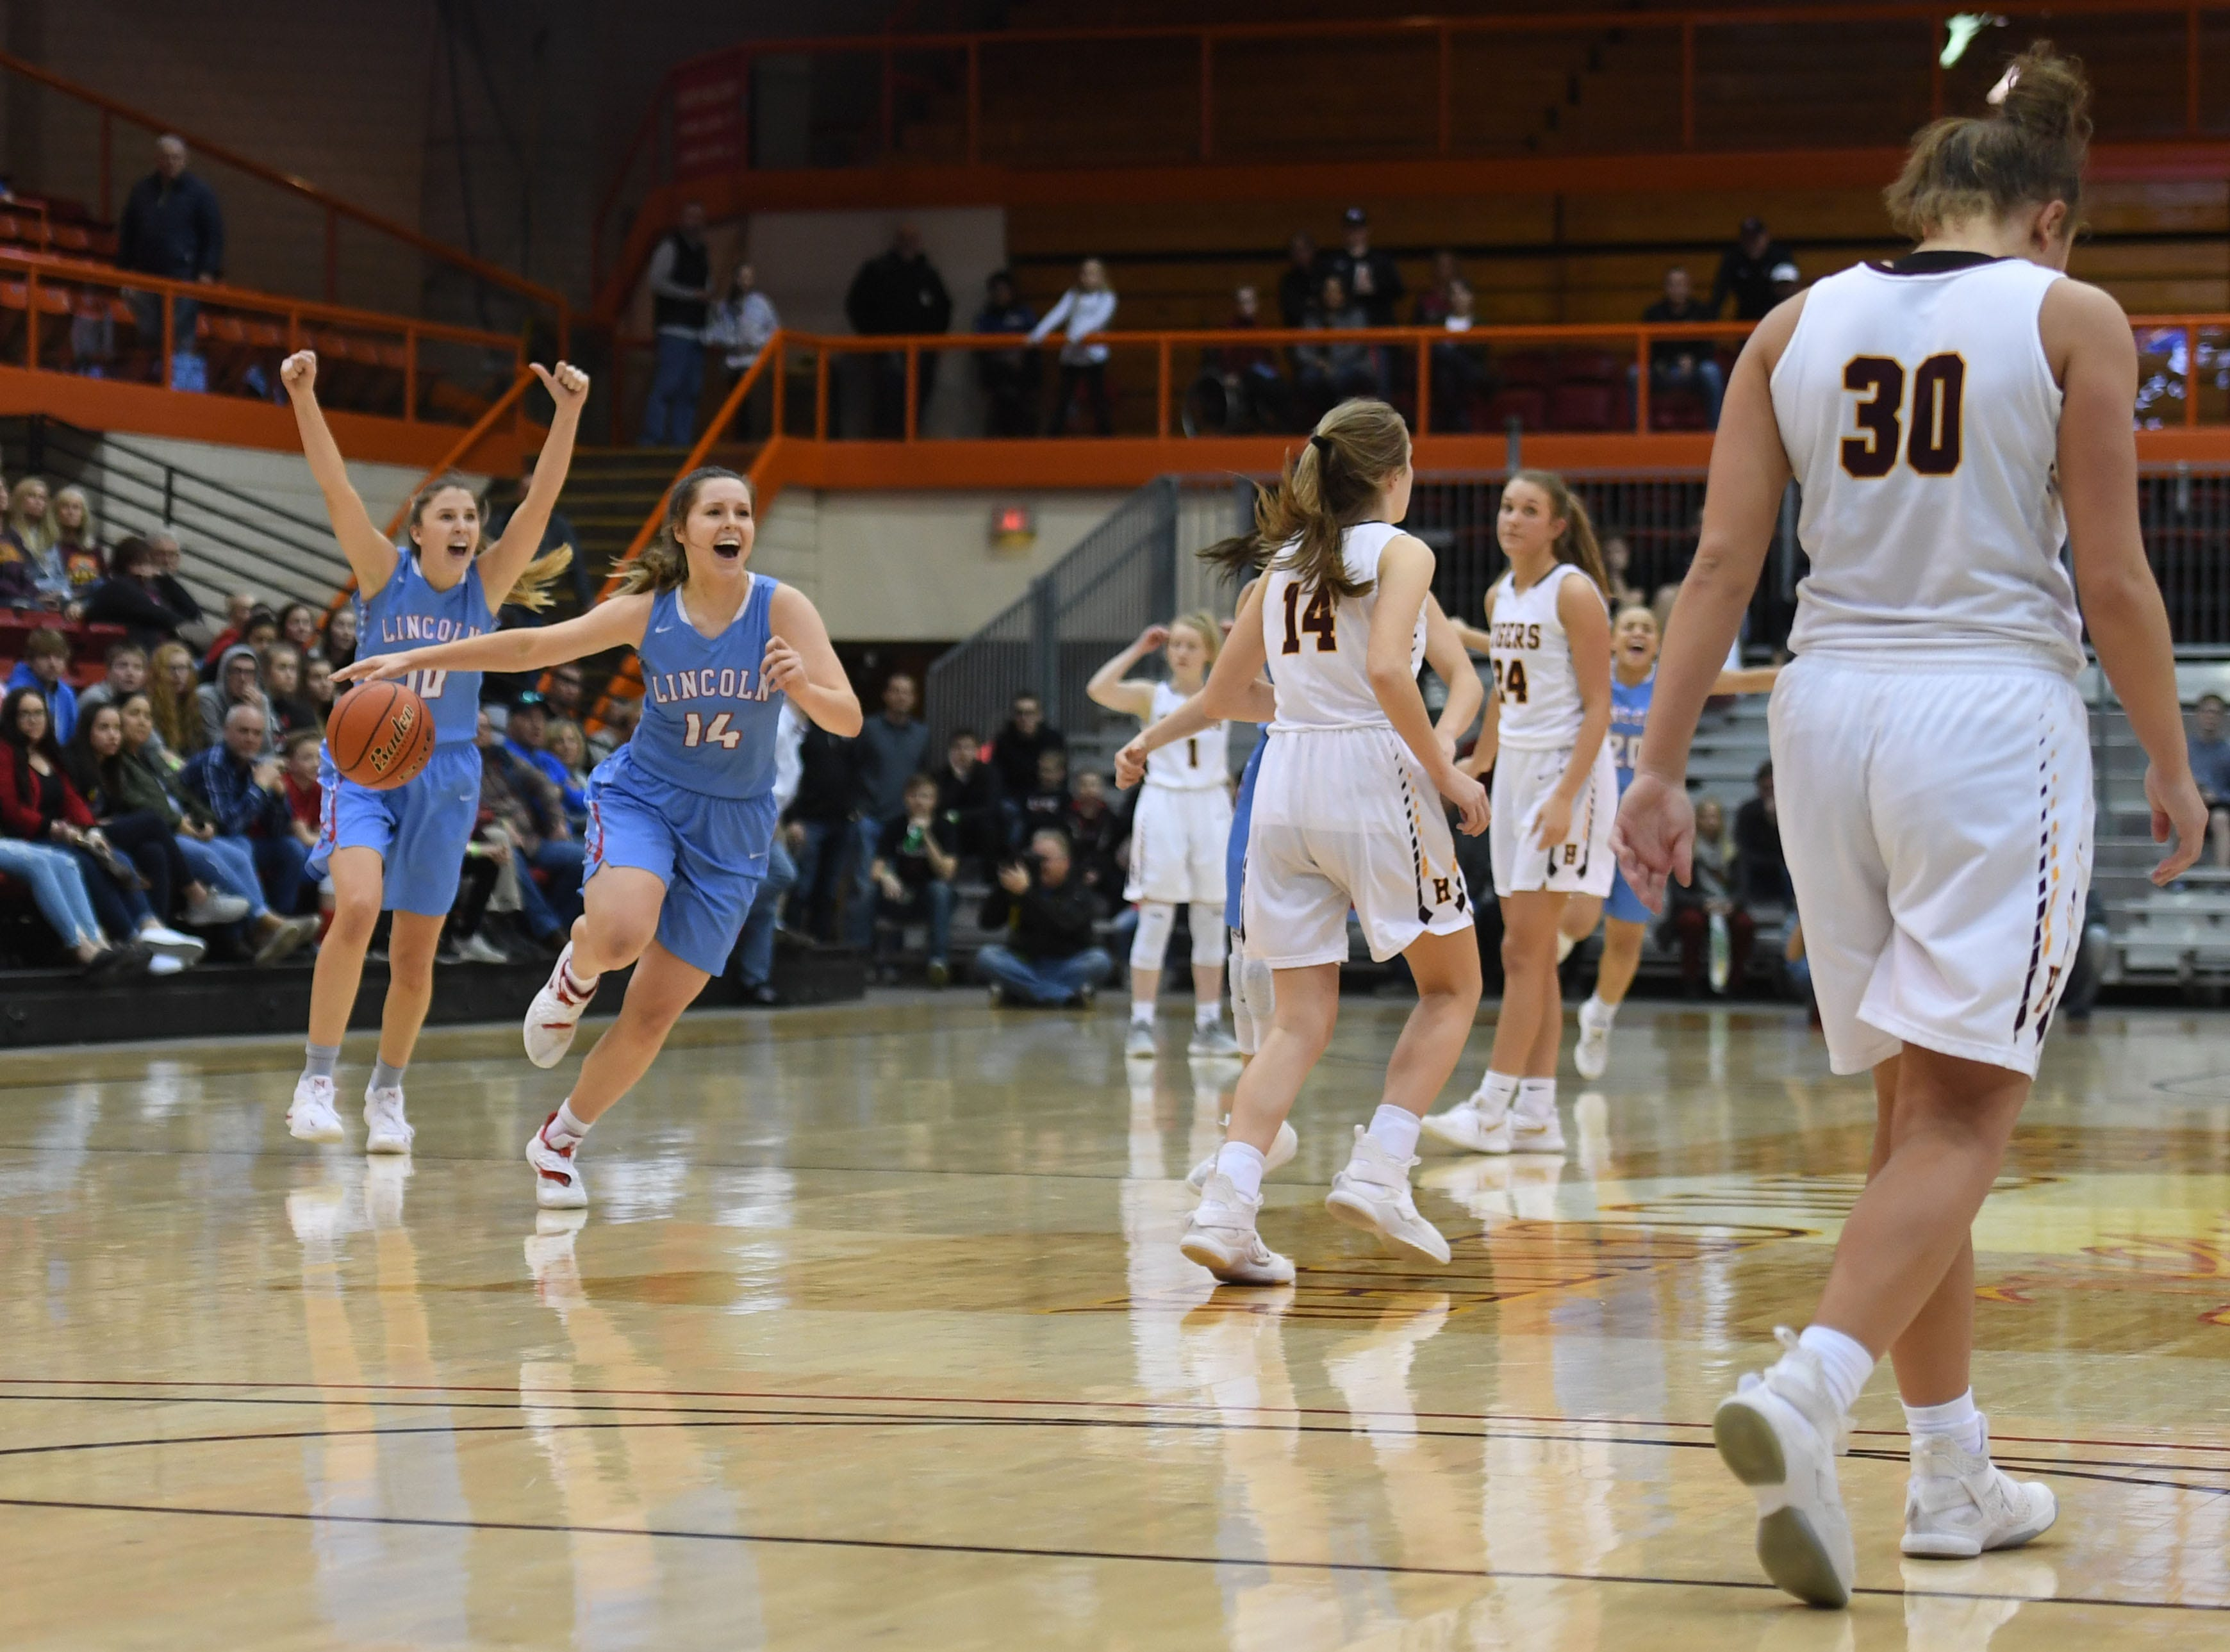 Lincoln's Morgan Hansen and Emma Osmundson run off the court after their win against Harrisburg in the Class AA semifinals Thursday, March 15, in Rapid City.